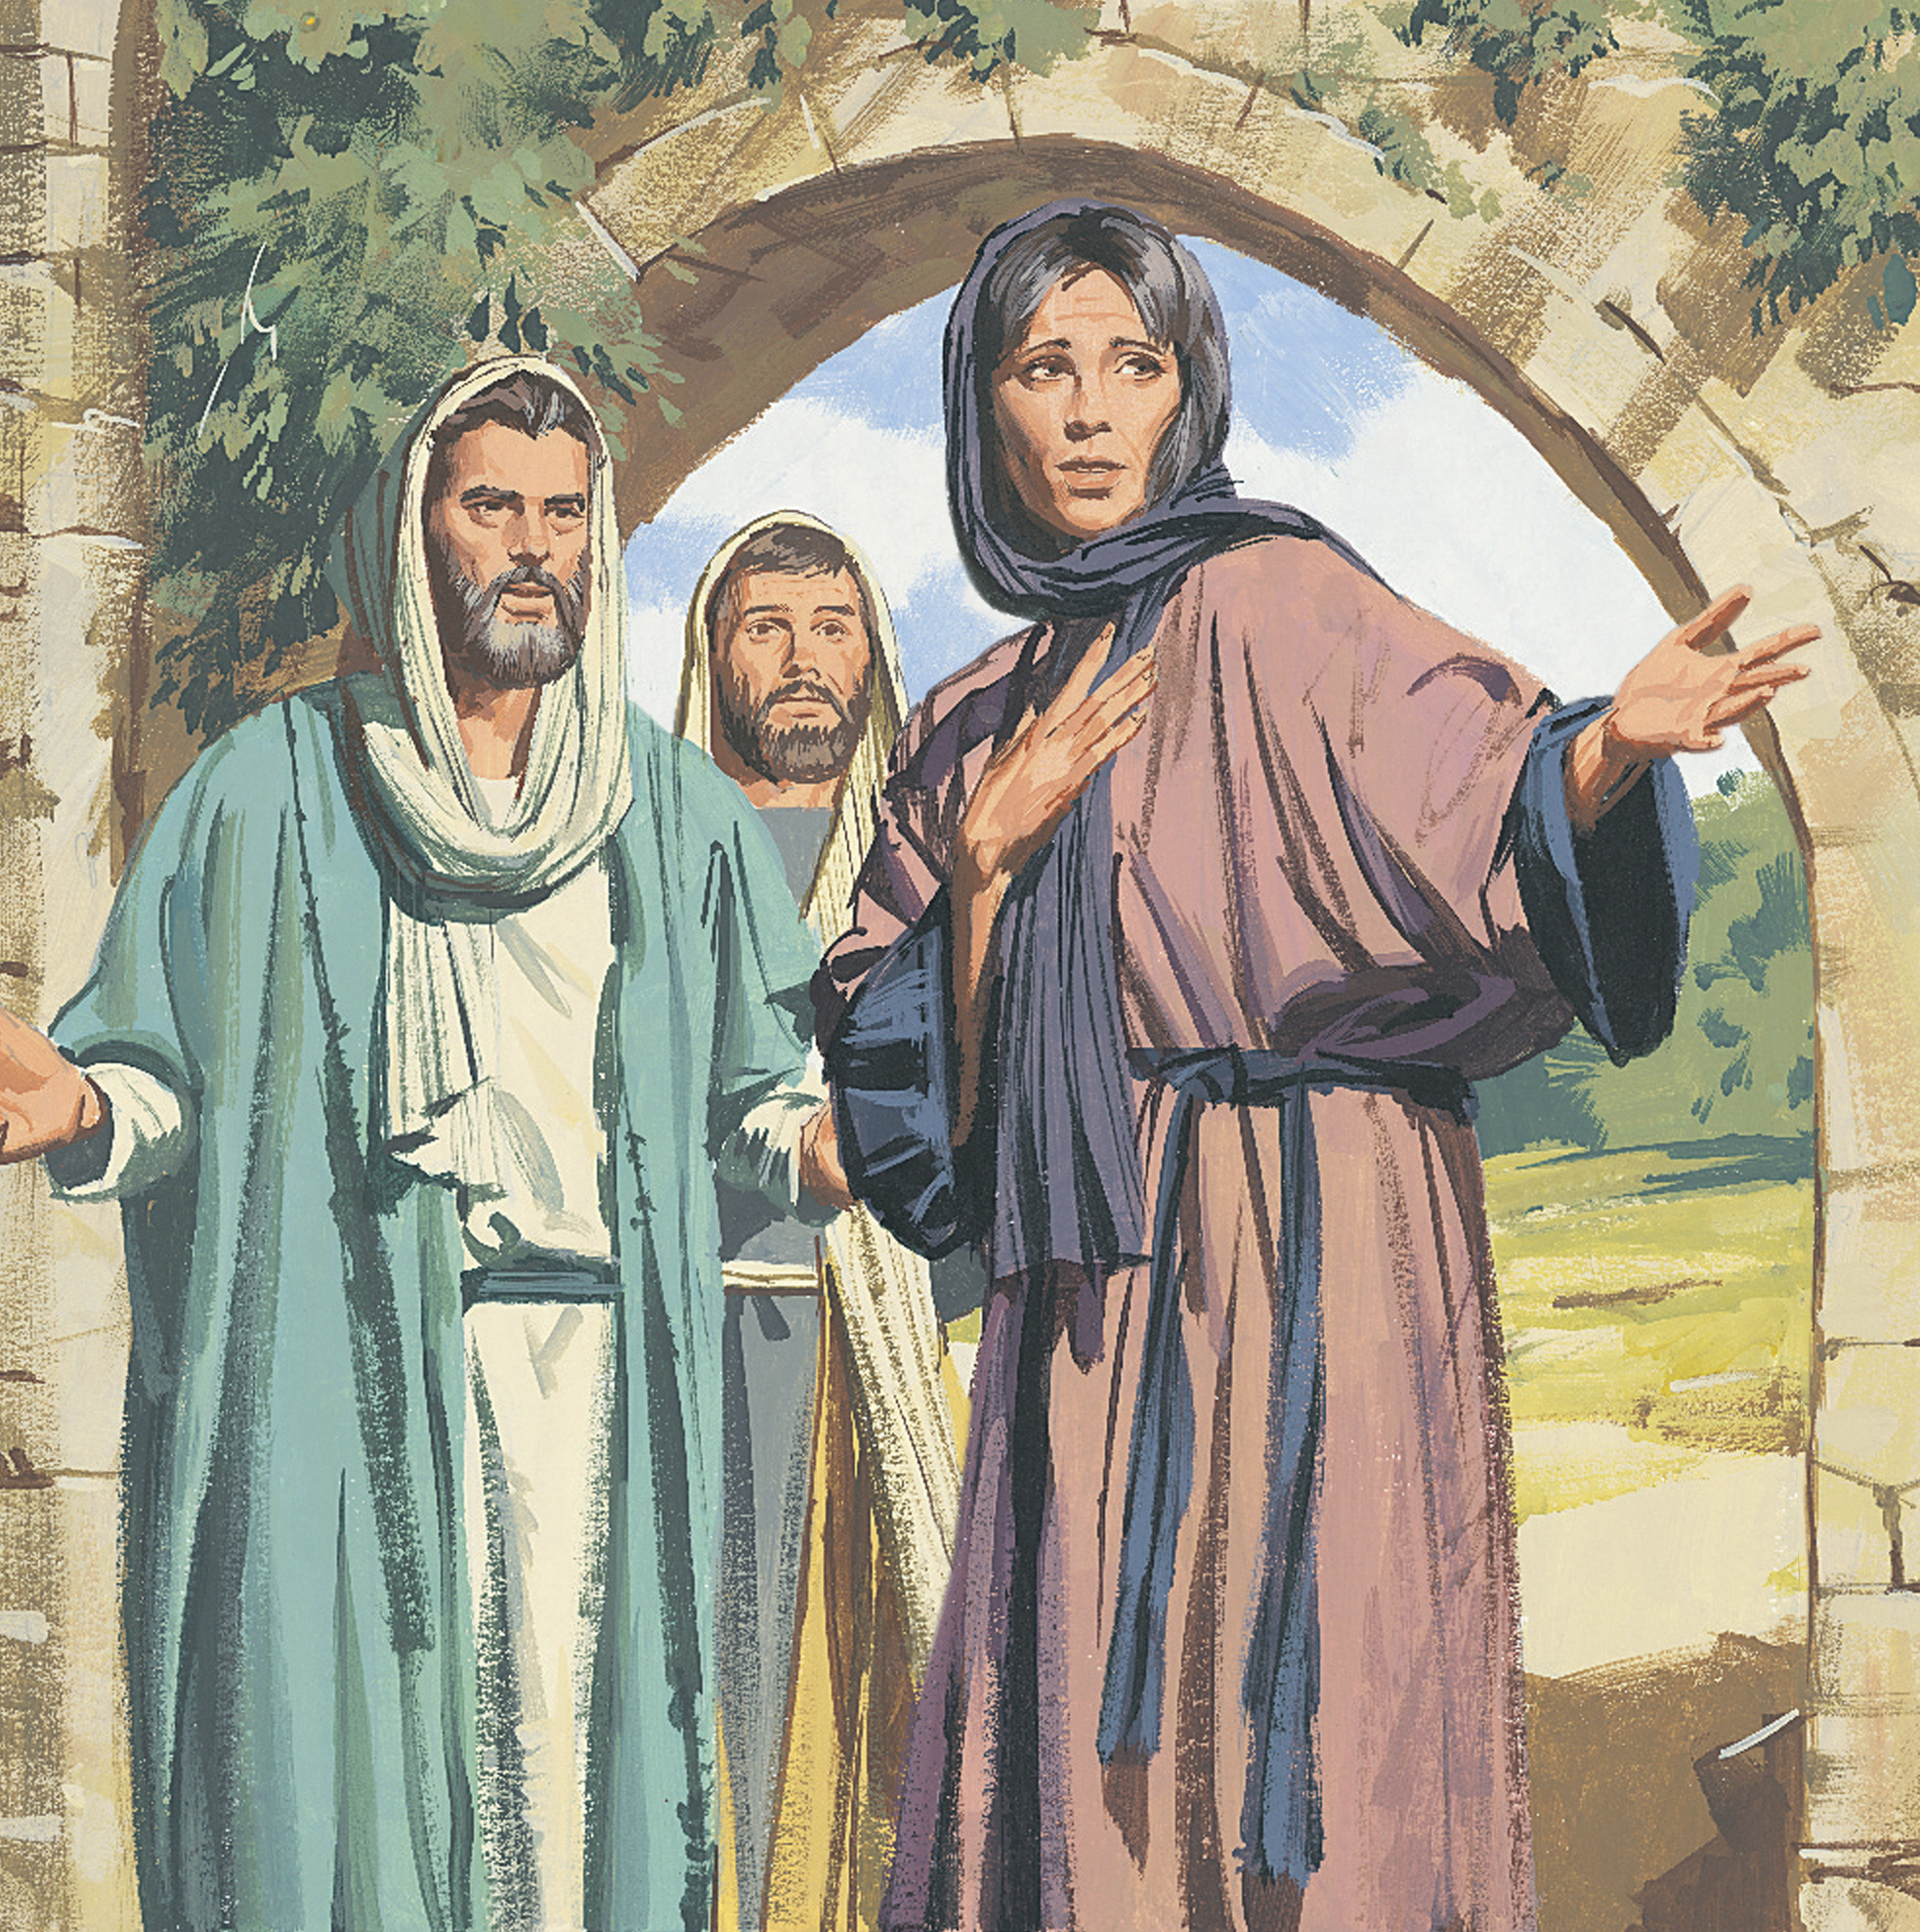 An illustration by Paul Mann of Mary Magdalene telling Peter and John that Christ's body is gone.